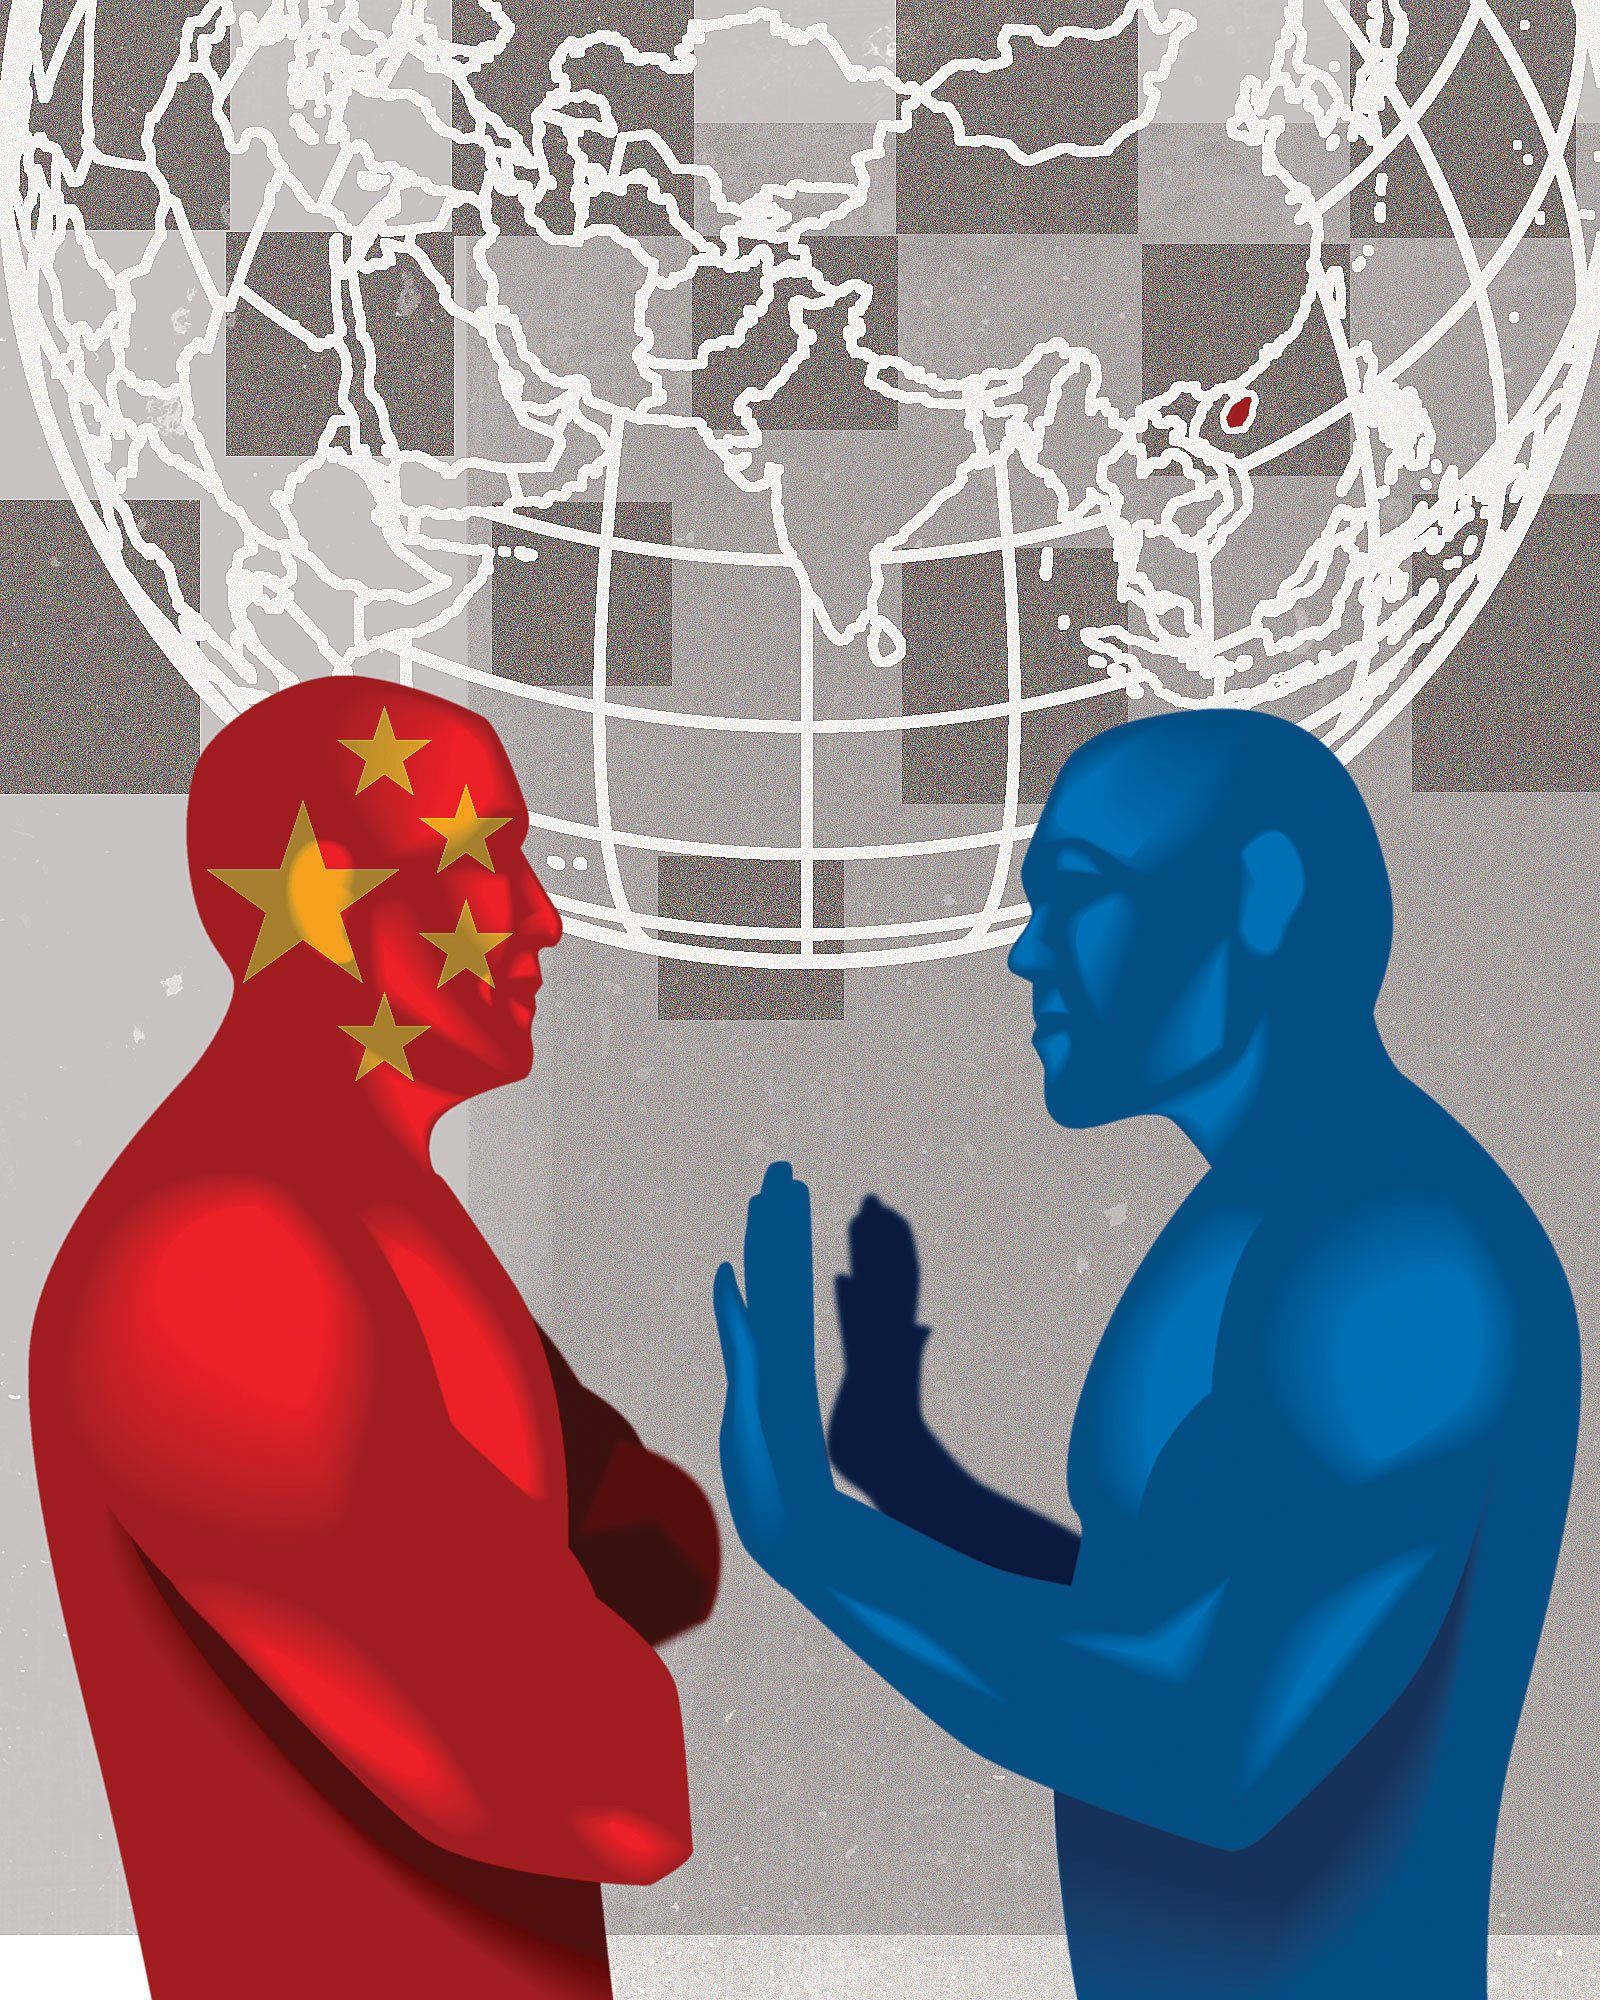 Sino-American conflict is aggravated by sovereignty issues in the Pacific Rim